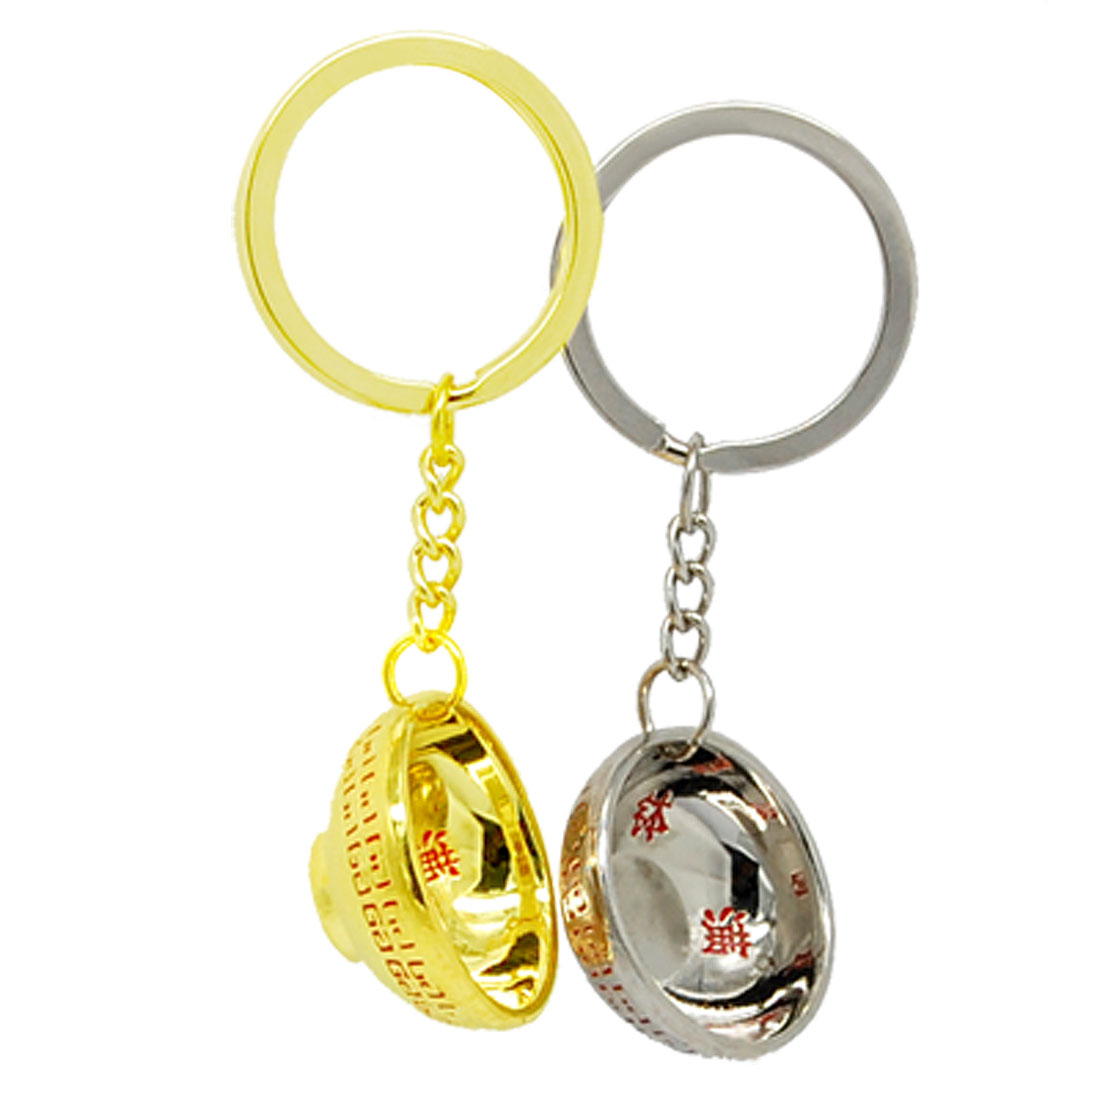 Golden Silvery Bowl Pendant Keychain Key Ring Chain Set